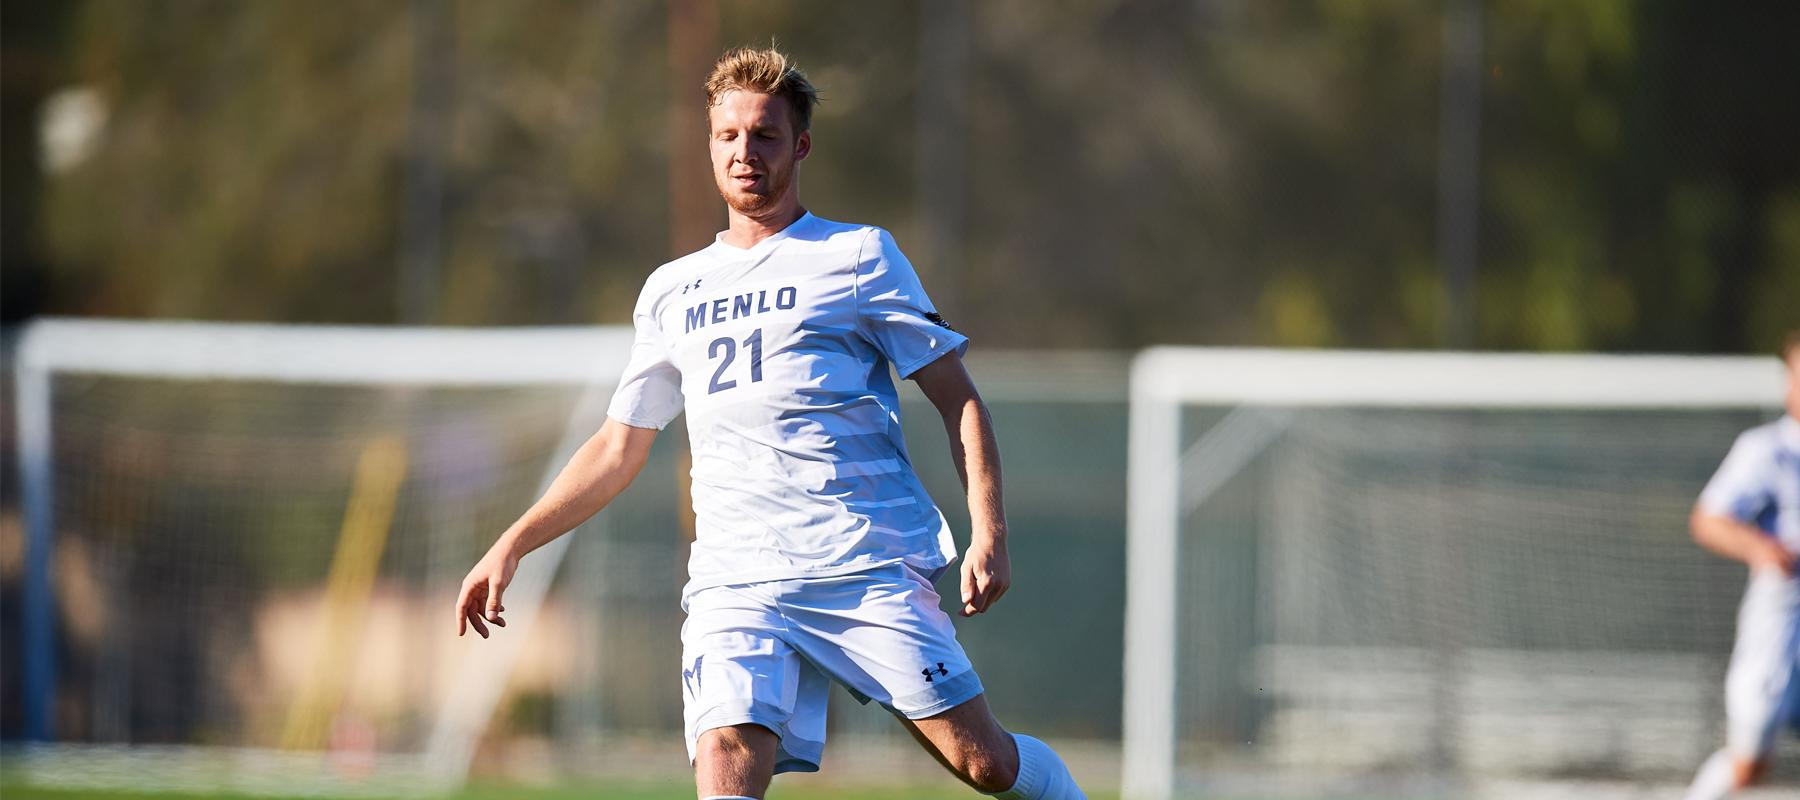 Men's Soccer scores 12 seconds in, wins 3-1 over TMU